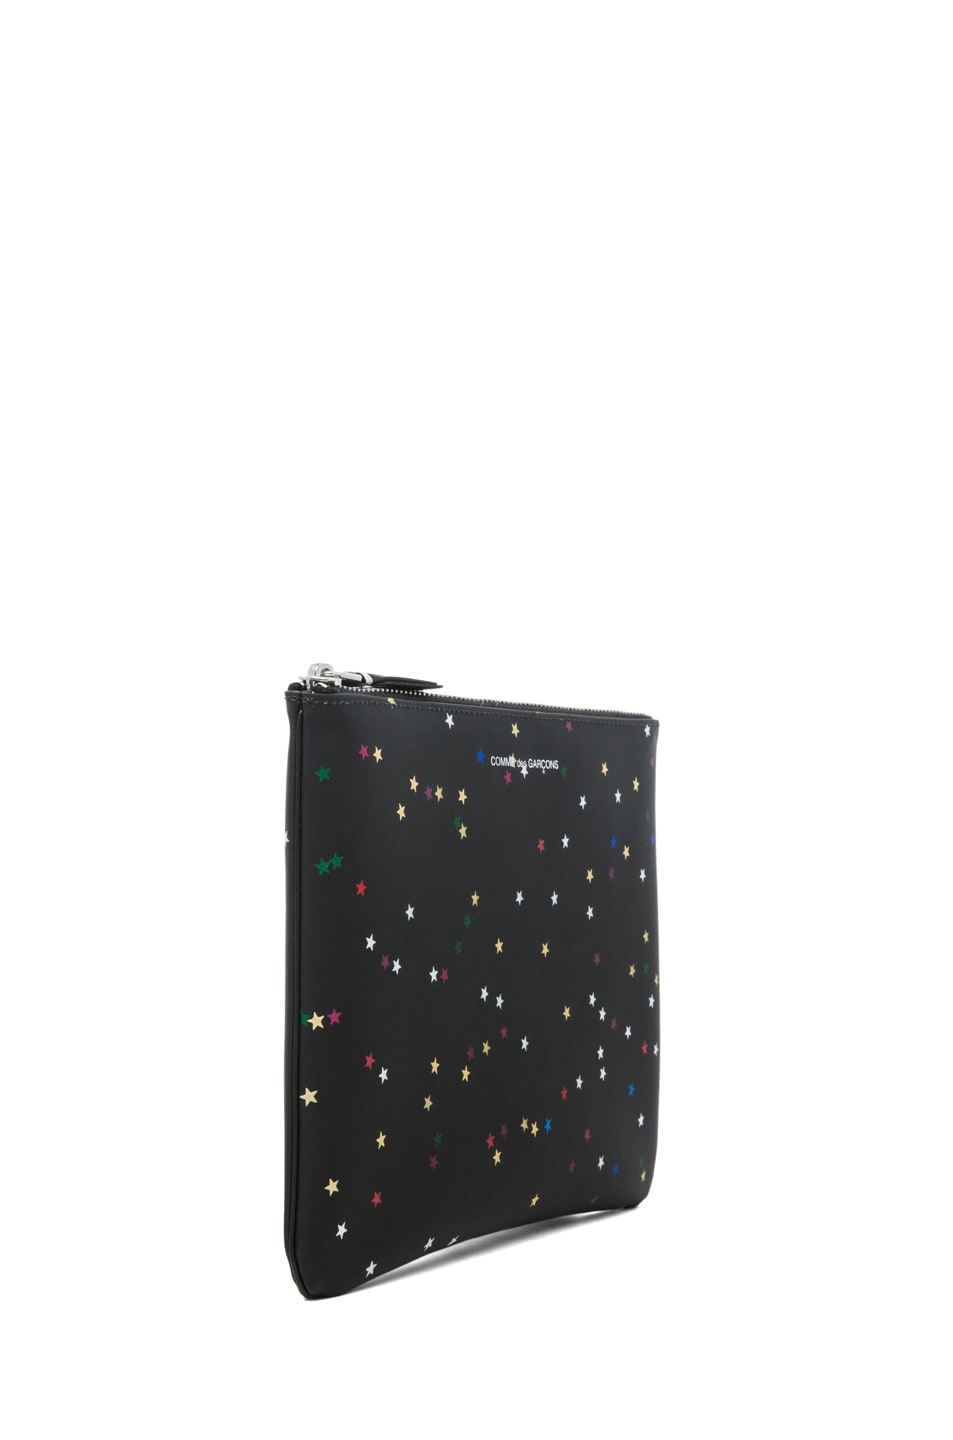 Forum on this topic: COMME des GARCONS Bright Star Document Holder, comme-des-garcons-bright-star-document-holder/